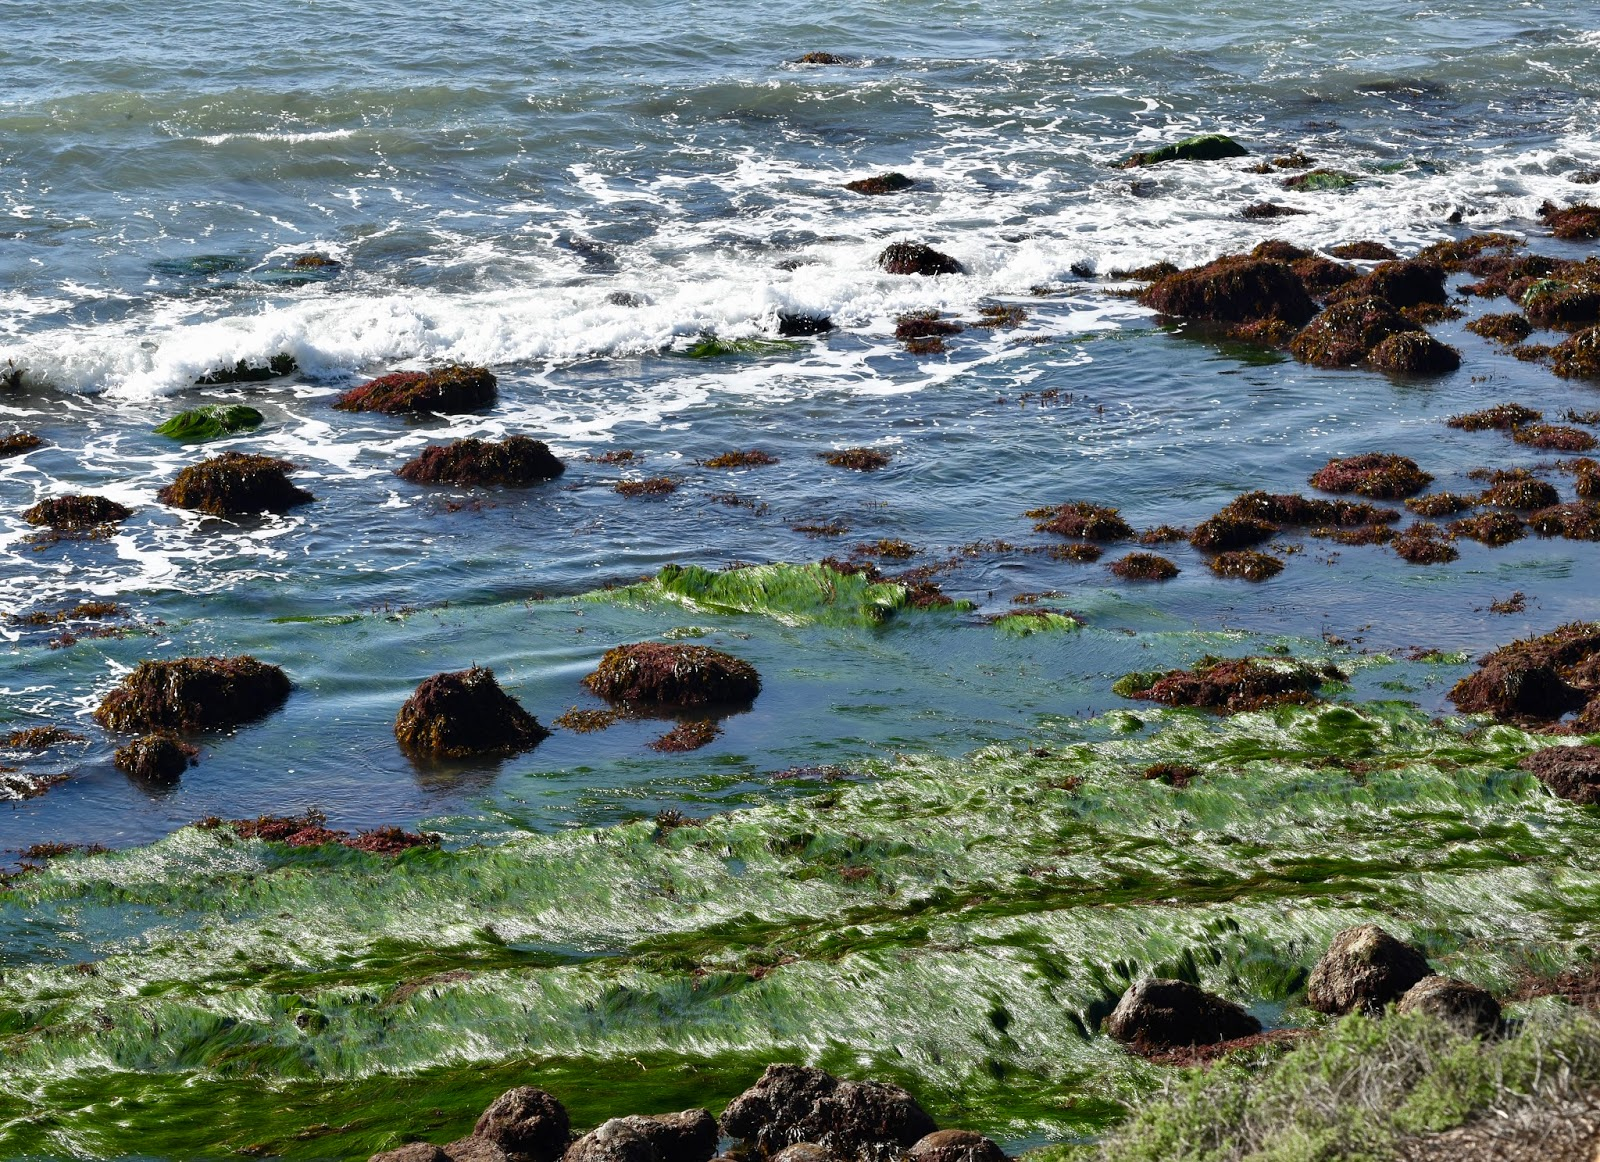 Good times rollin cabrillo tidepools the ride to the tidepools at point loma take you through fort rosecrans national cemetery its a beautiful and somber drive nvjuhfo Choice Image